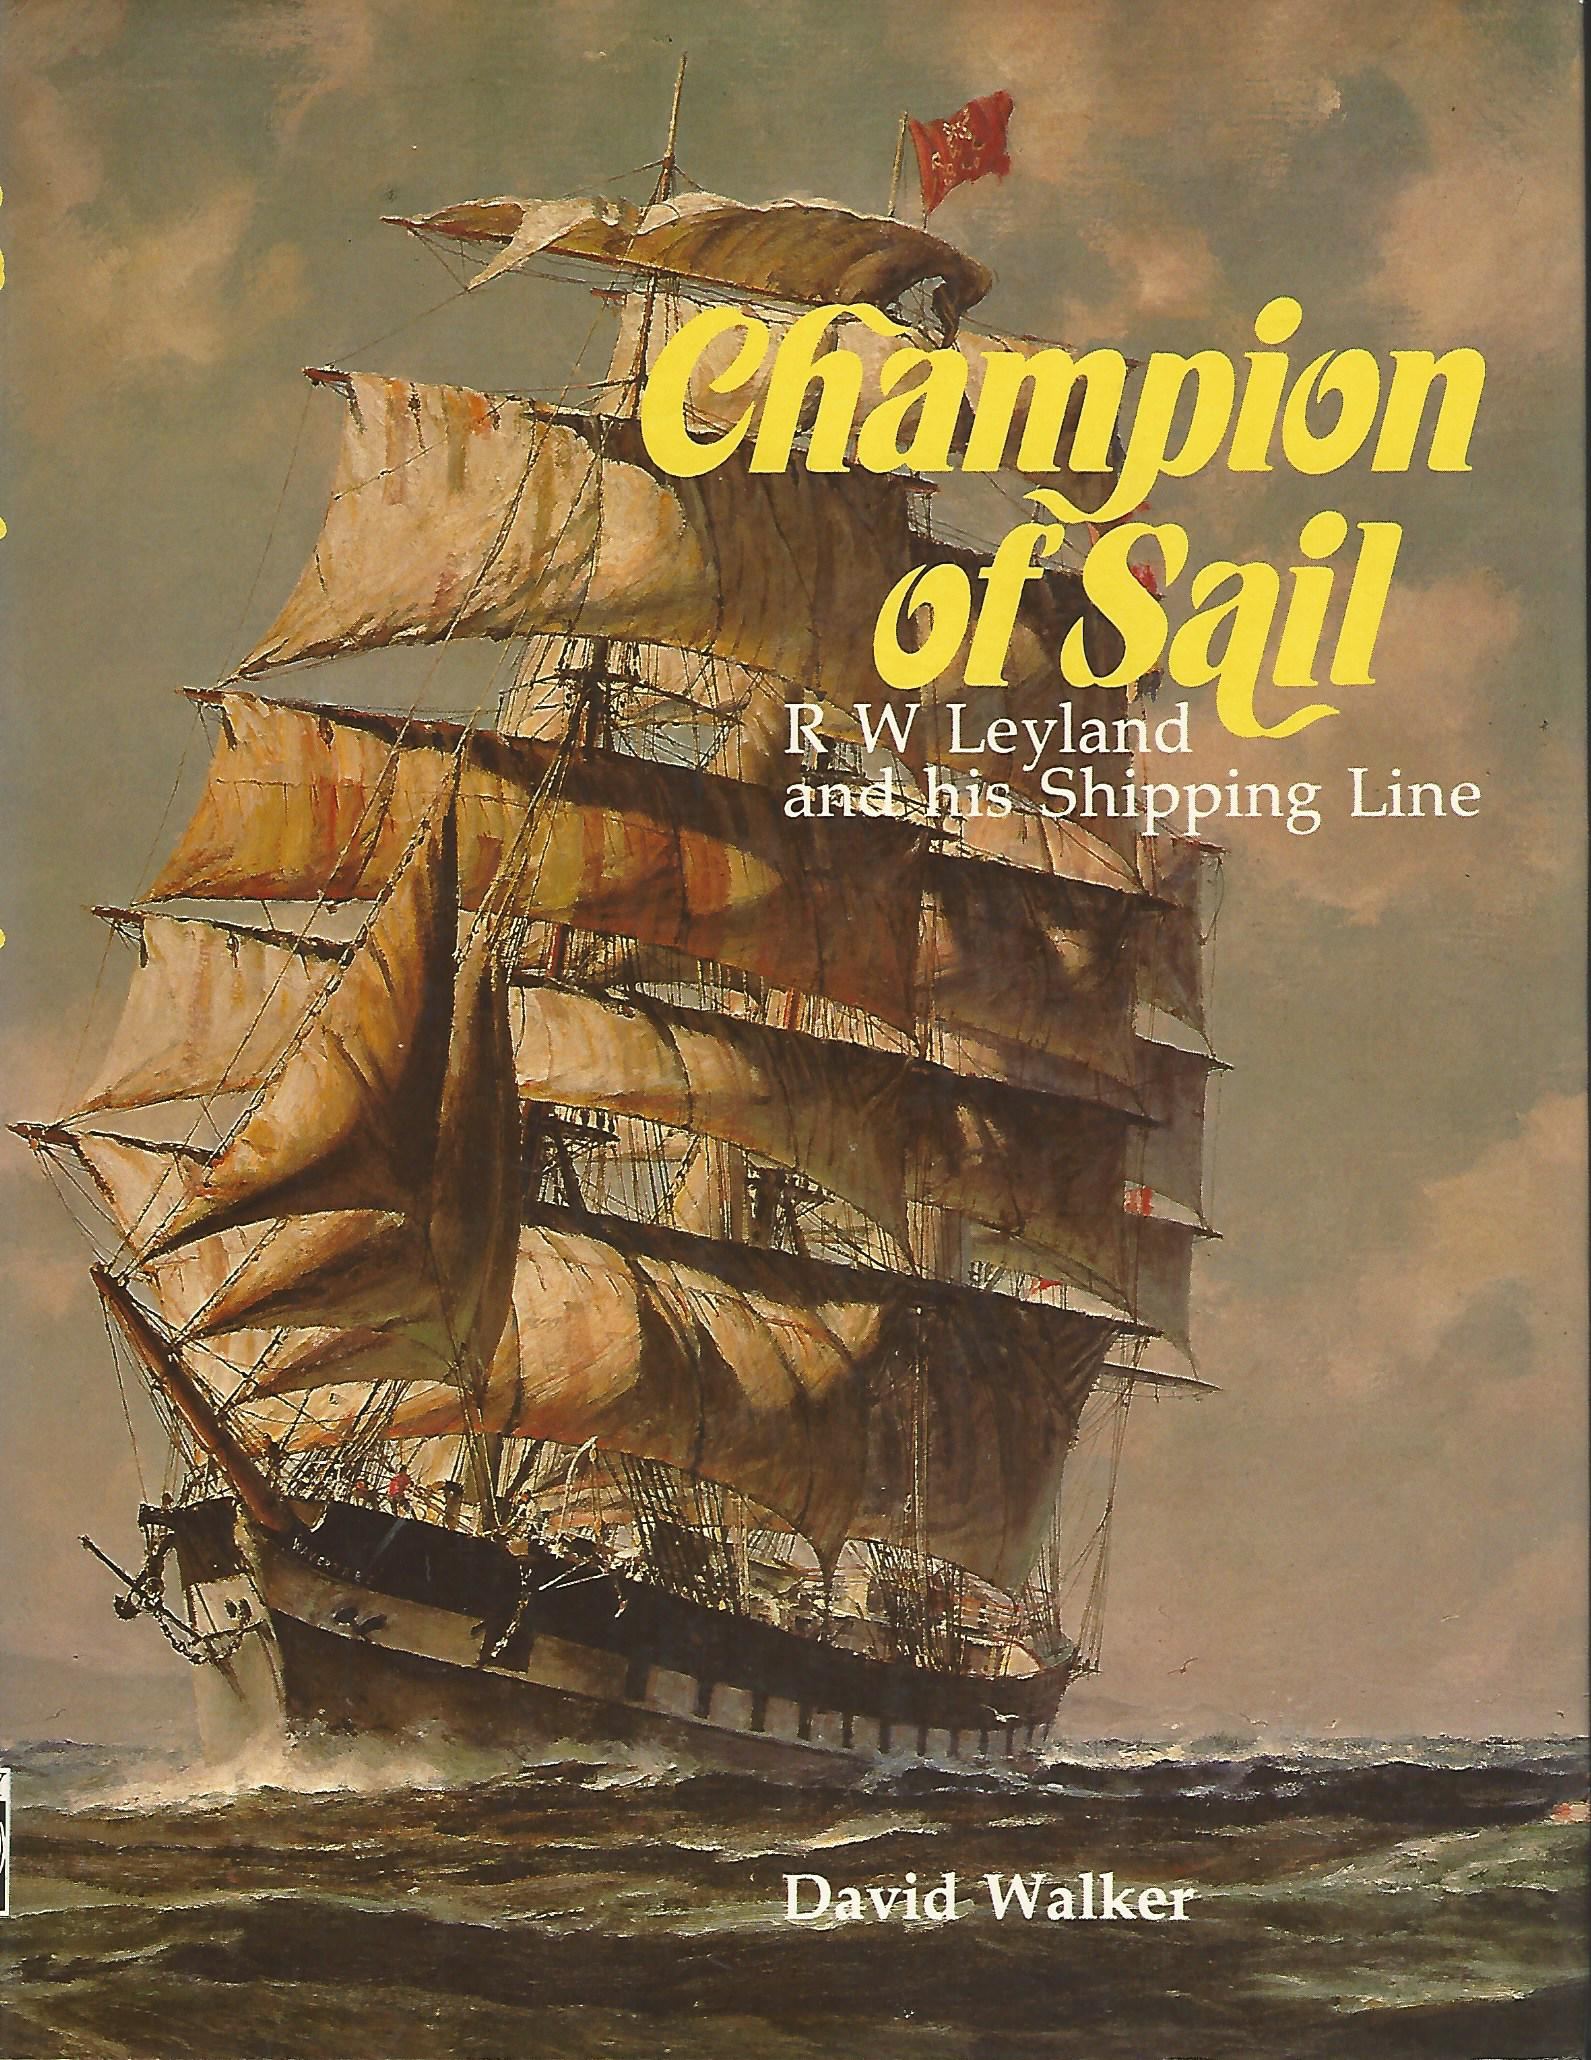 Image for Champion of Sail: R.W. Leyland and his Shipping Line.